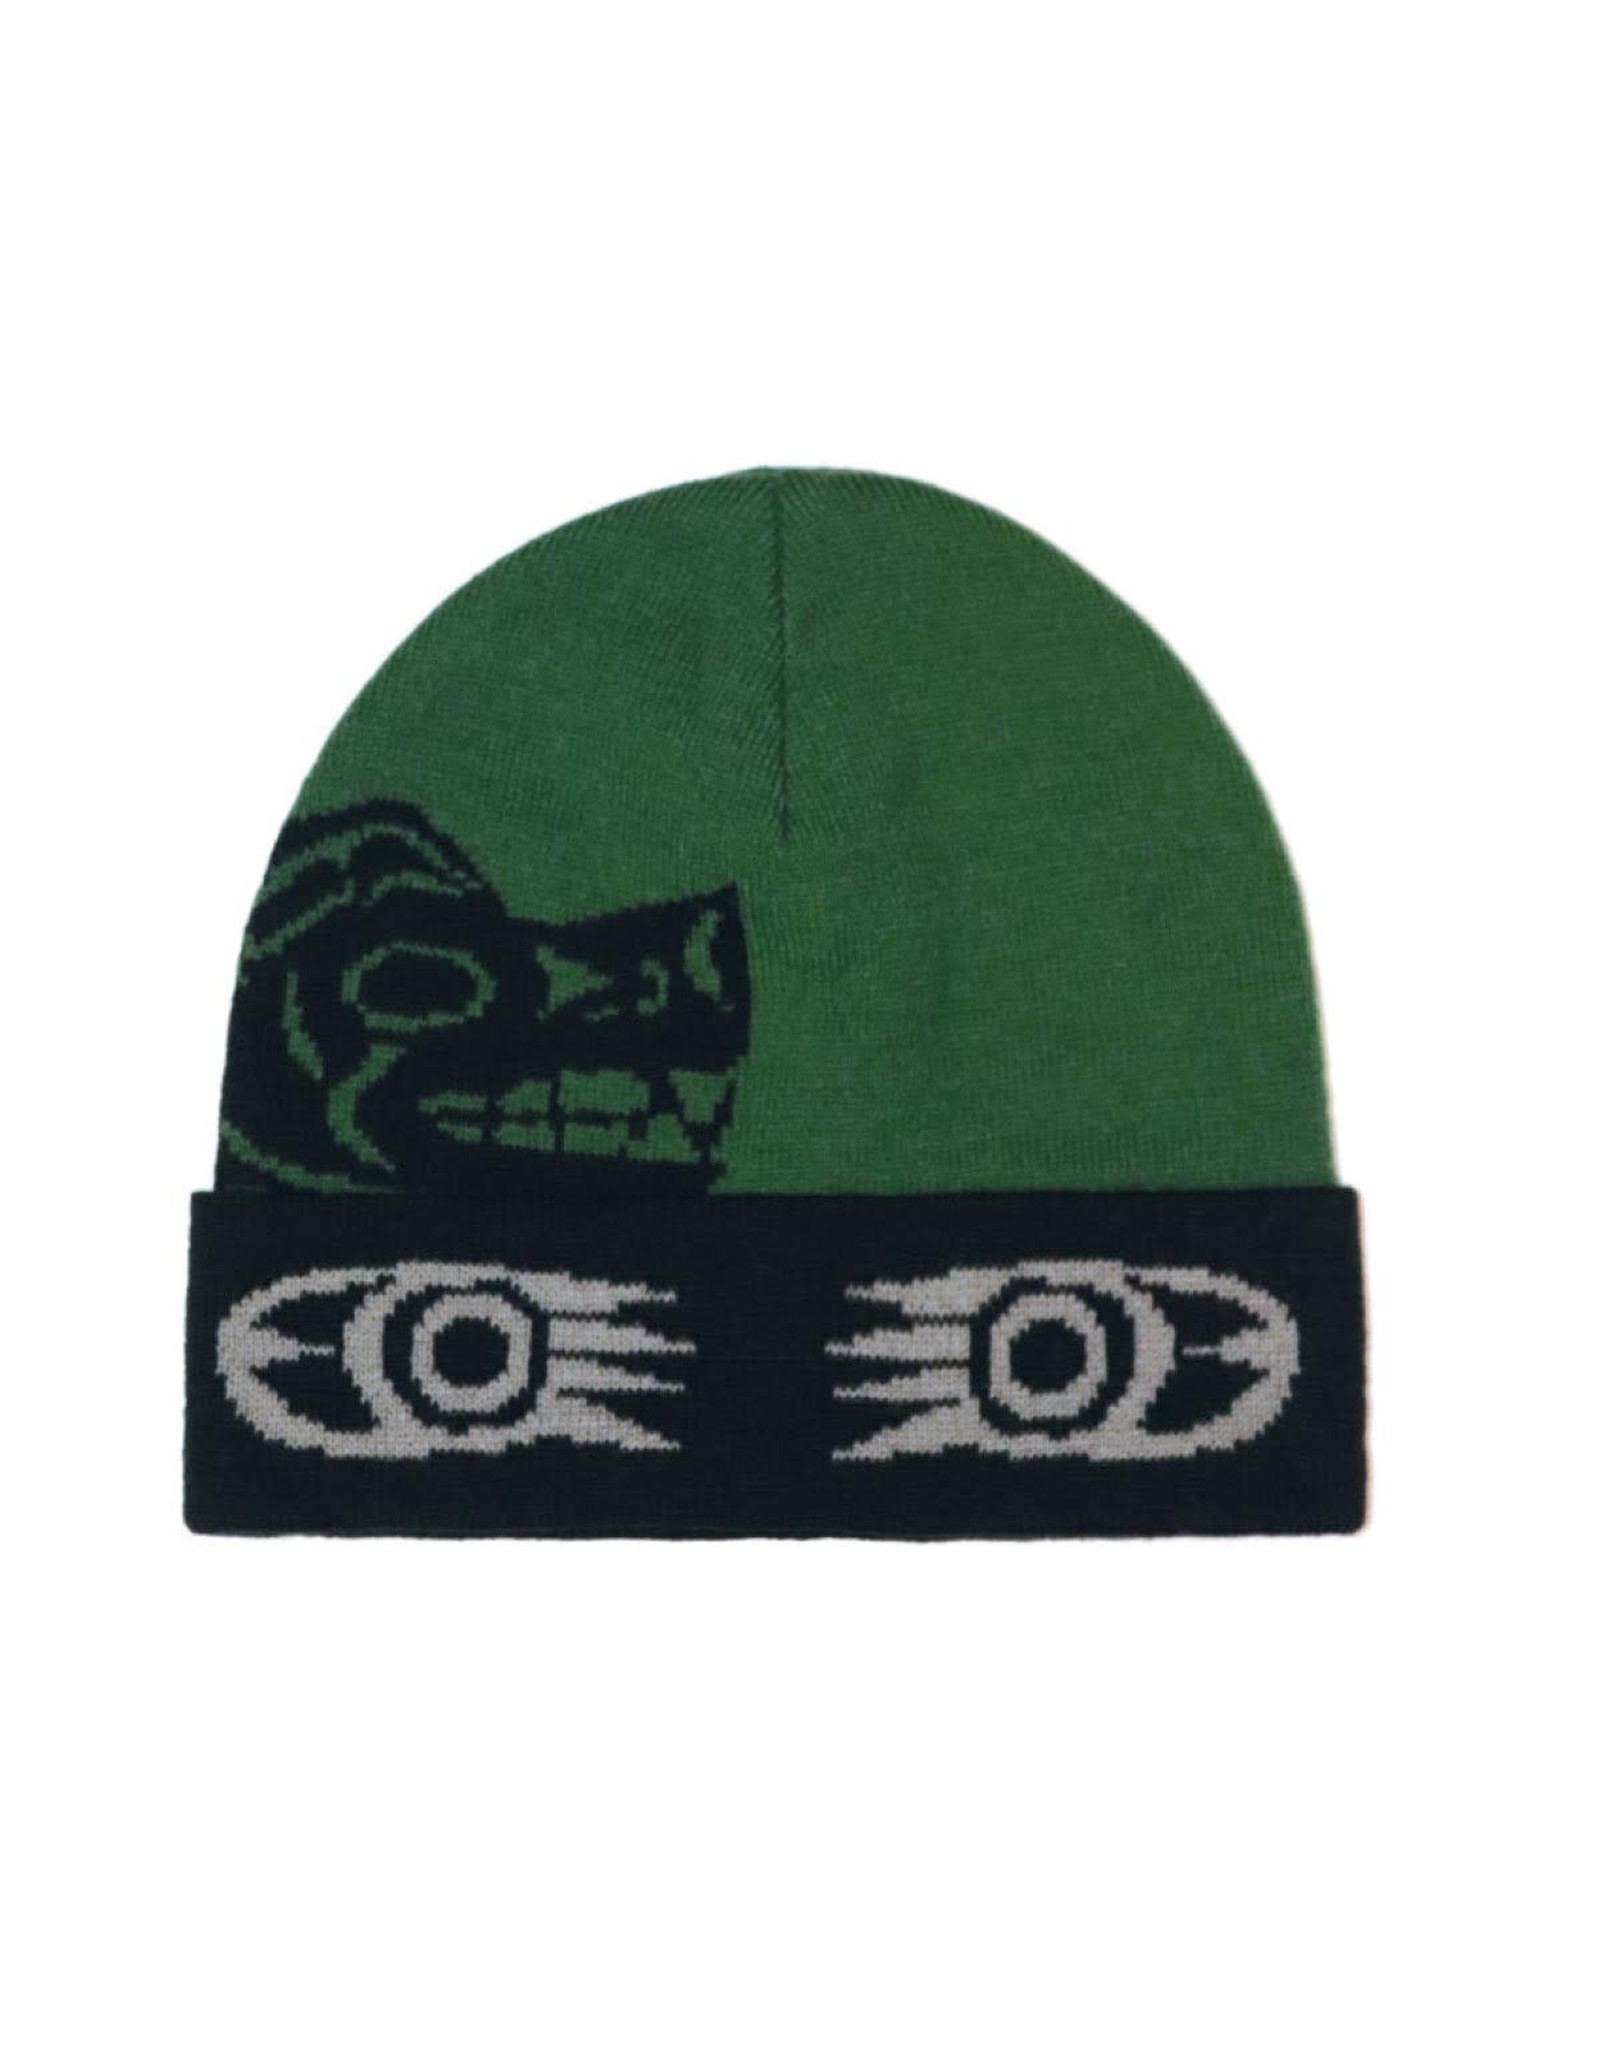 Knitted Tuque  - Grizzly by Maynard Johnny Jr (TQJG2)